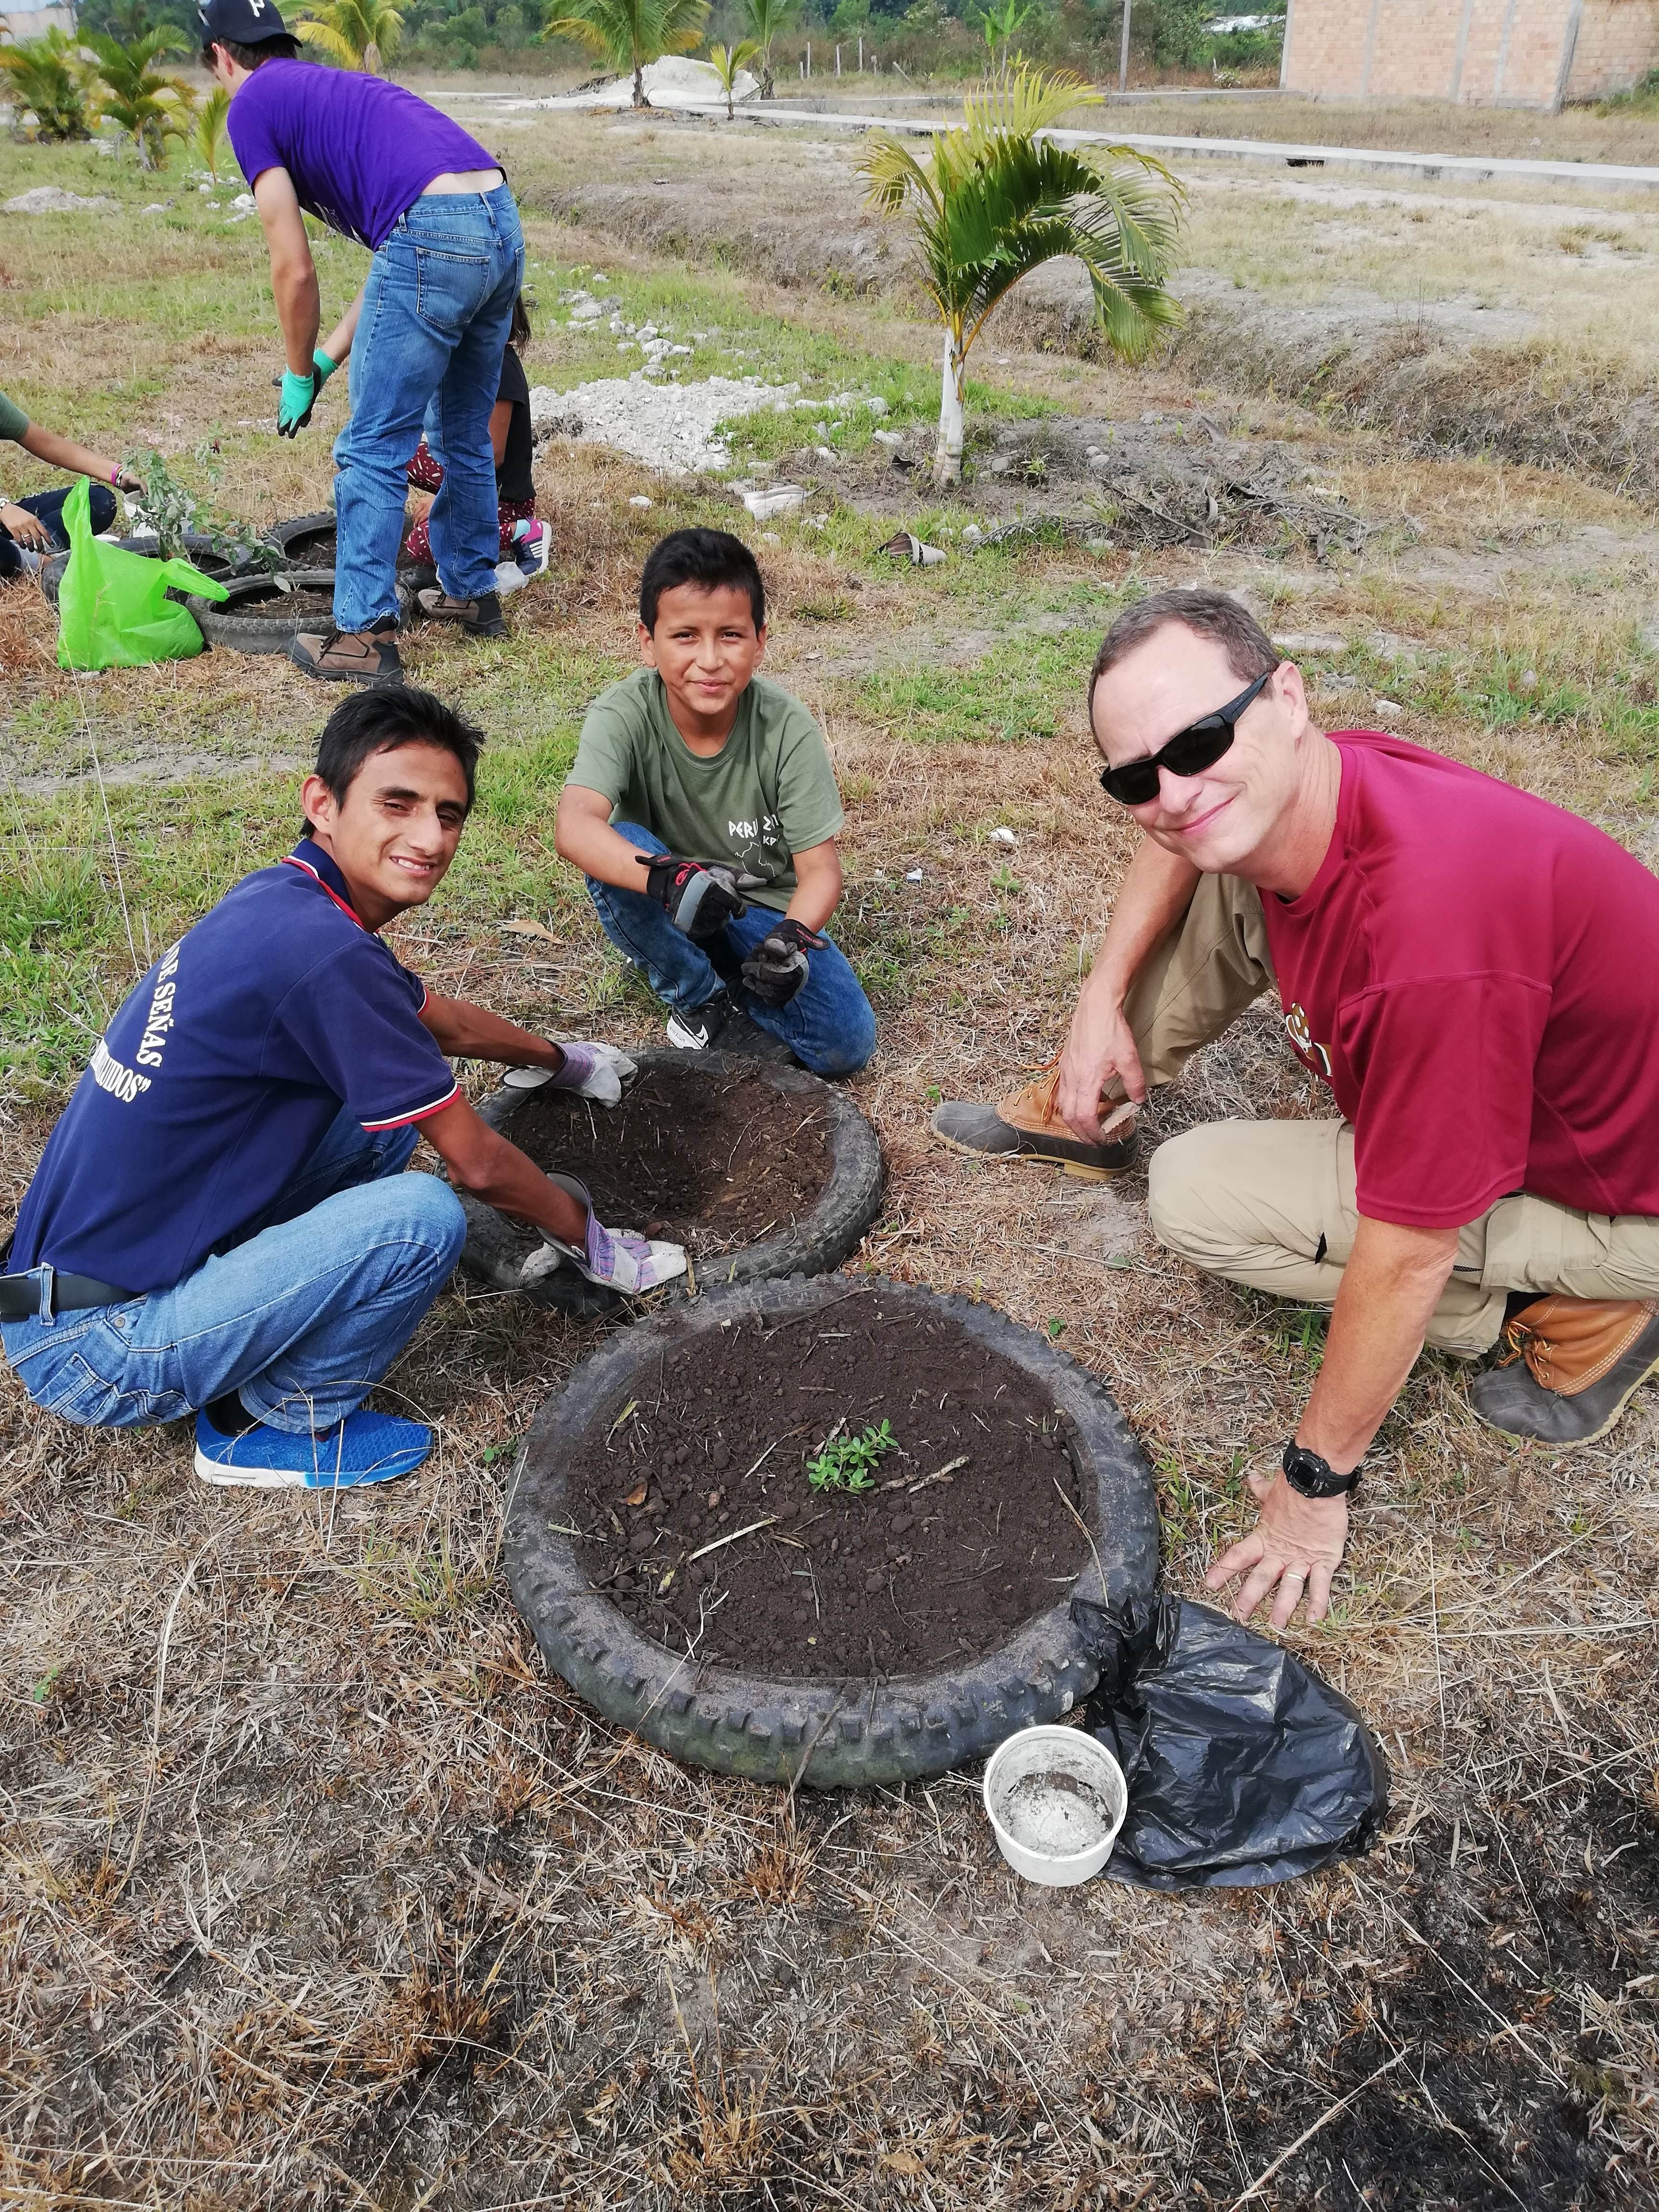 Avery and students enjoying their time together while planting.